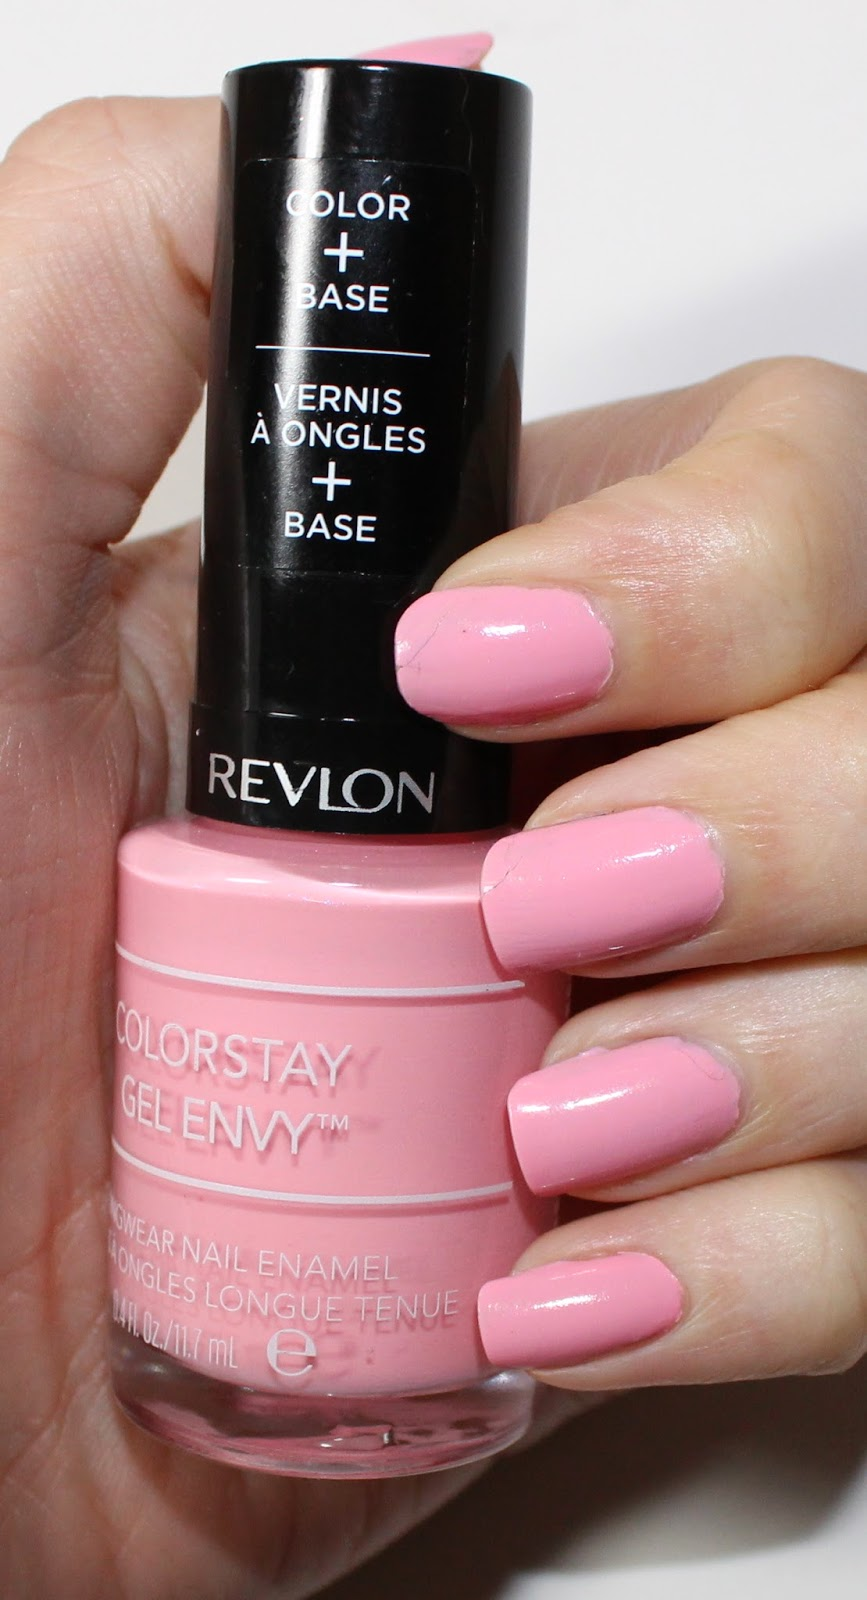 Revlon ColorStay Gel Envy in Cardshark